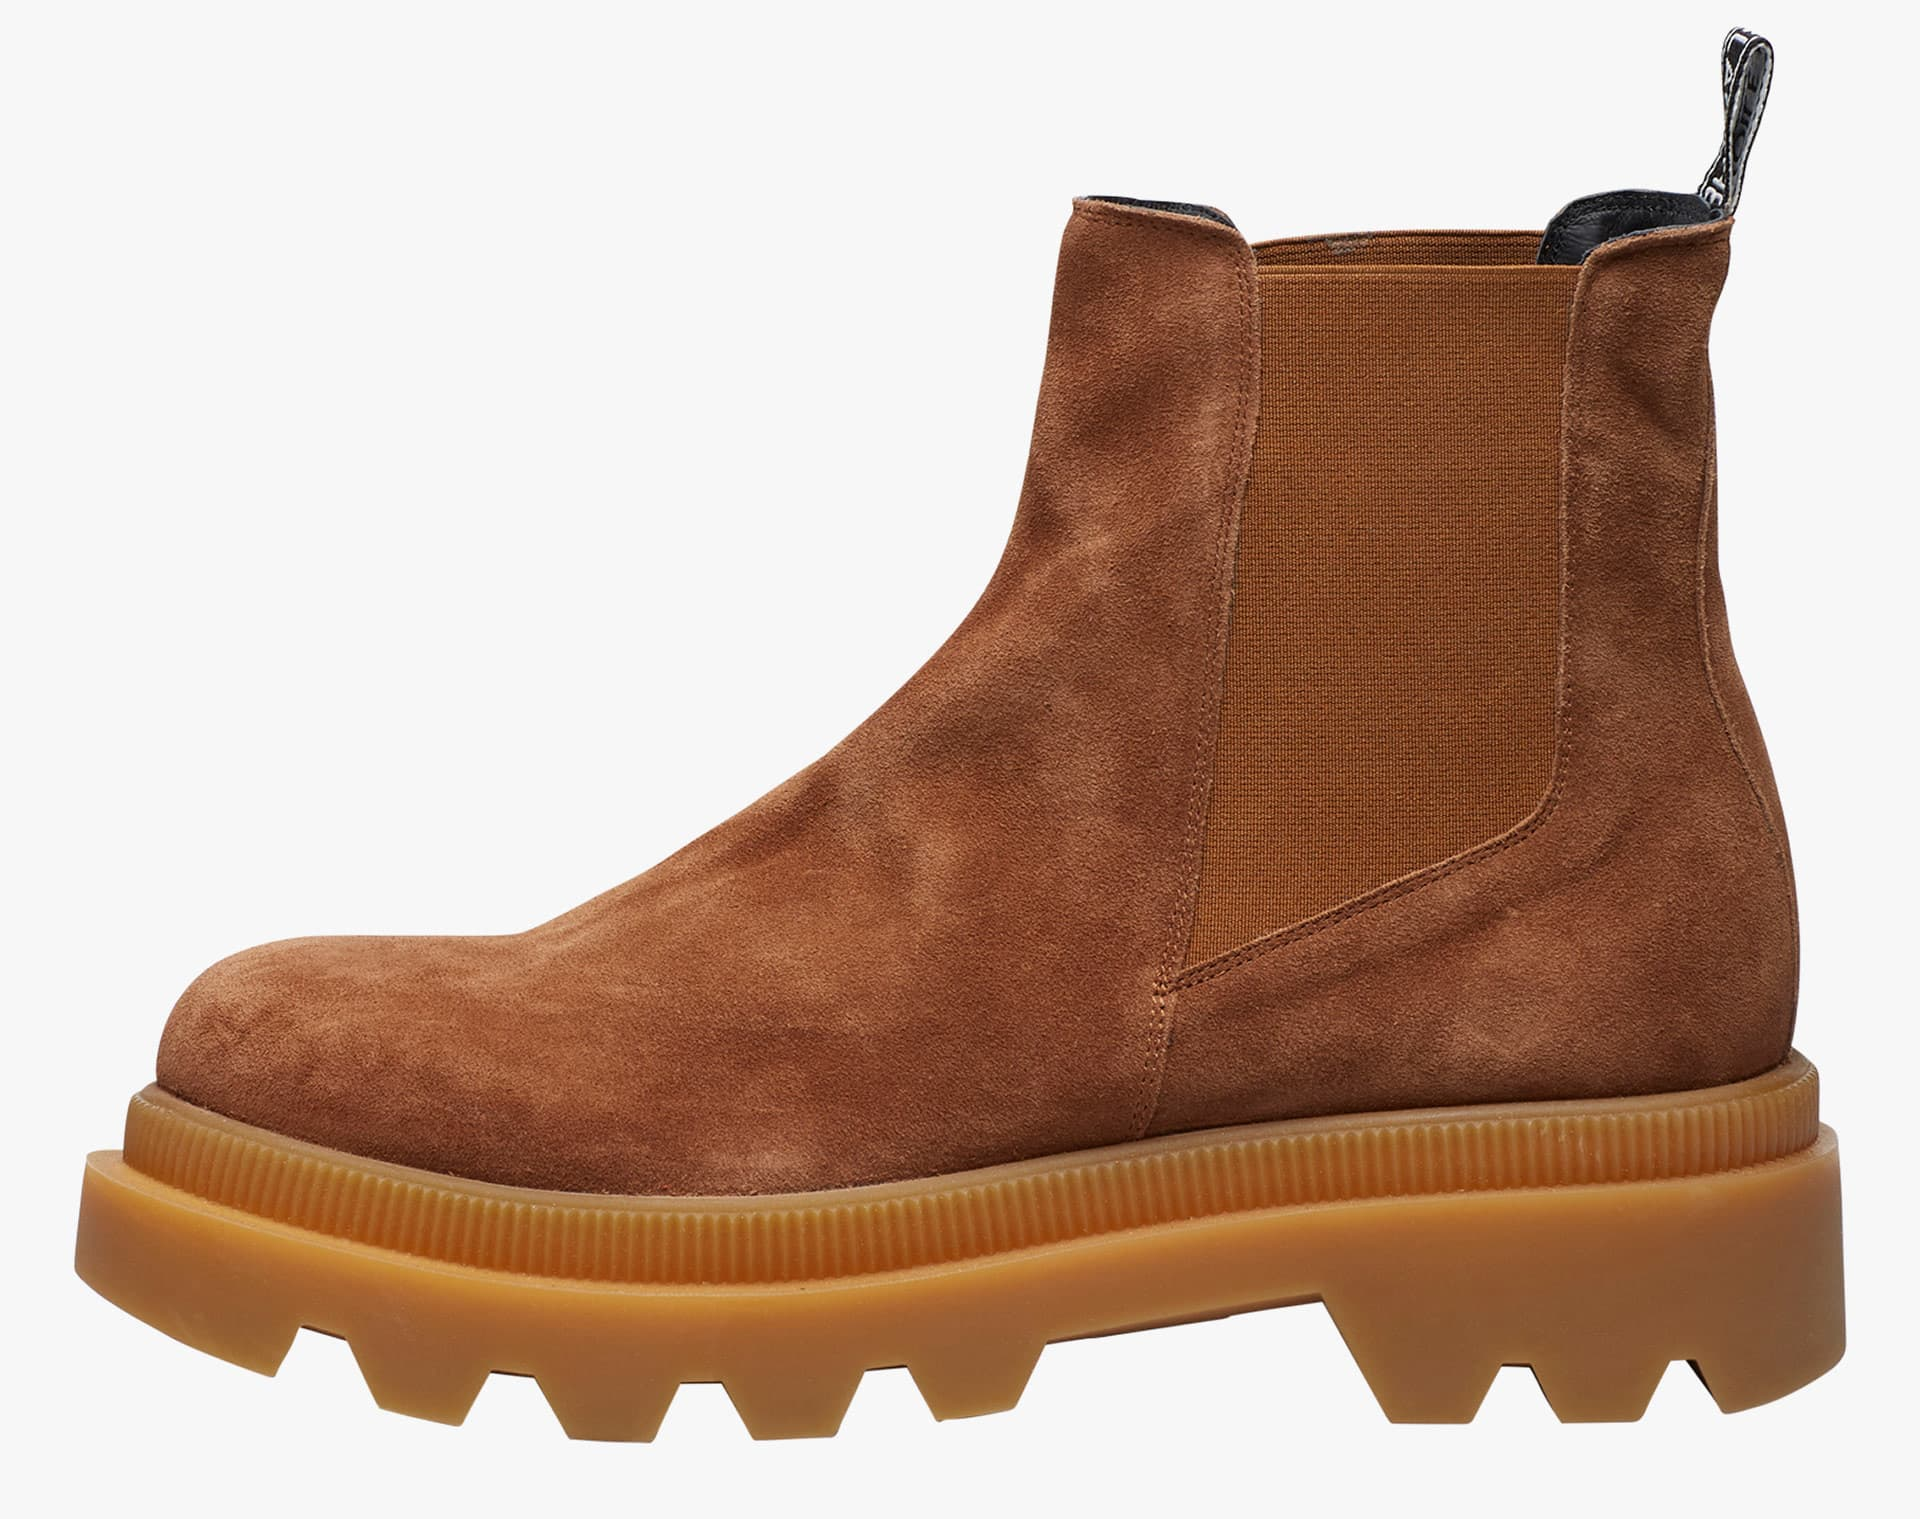 ALFRED 04 BIS - Chelsea boot in suede - Cuoio